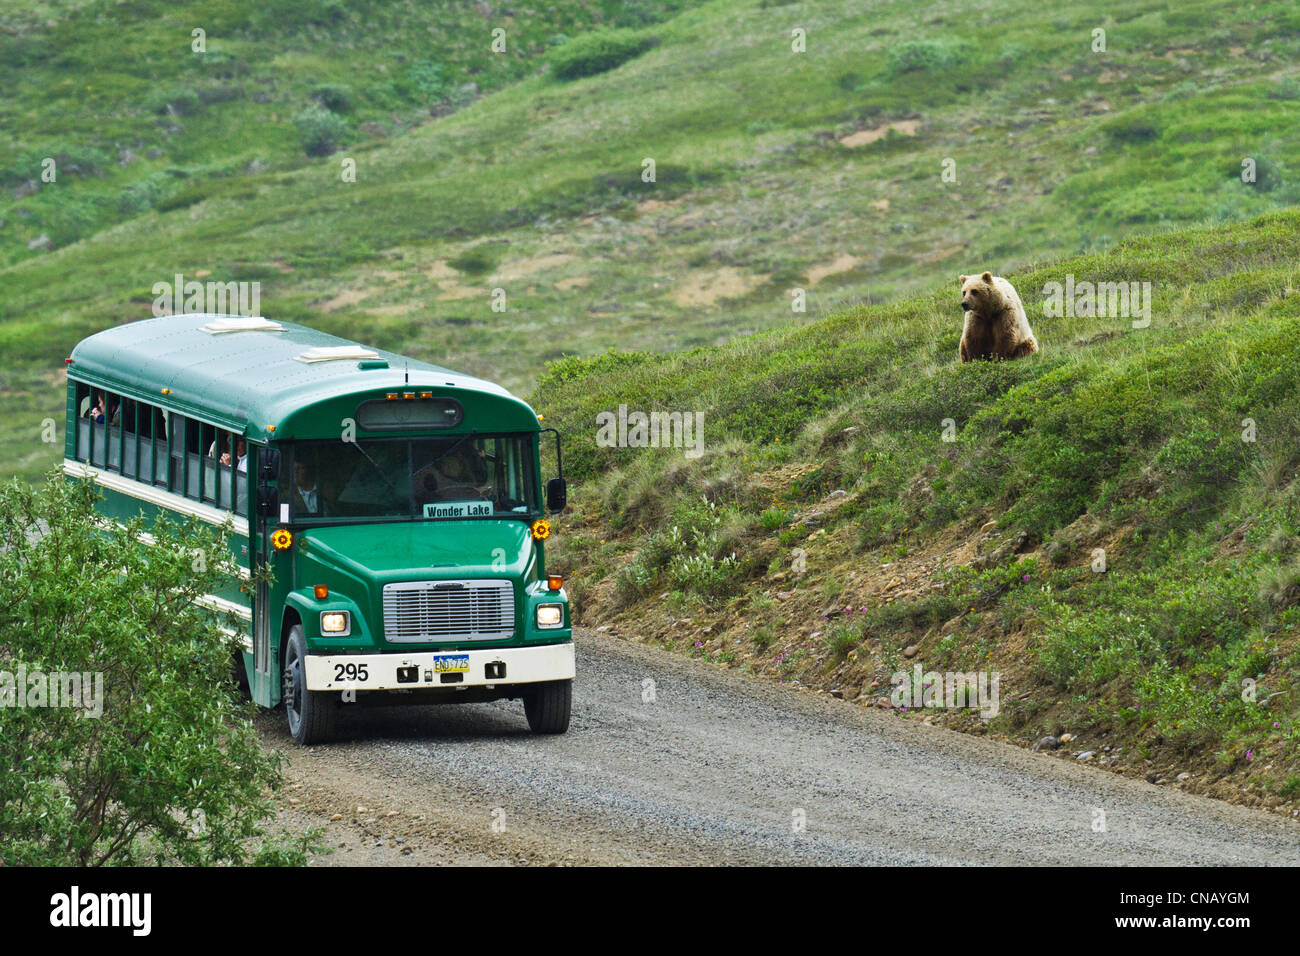 Grizzly bear on a hill watches a green shuttle bus near Stony Hill, Denali National Park , Alaska - Stock Image